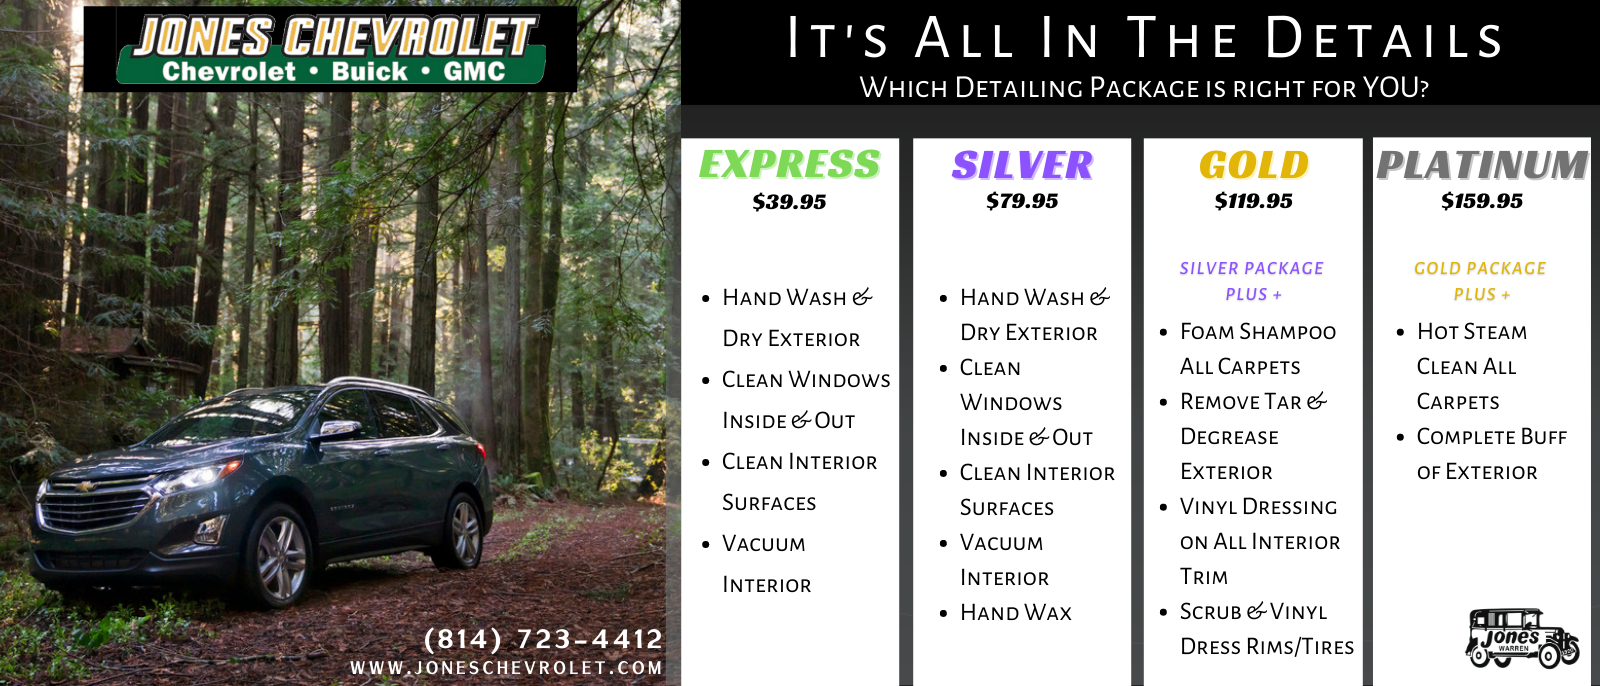 IT'S ALL IN THE DETAILS WHICH DETAILING PACKAGE IS RIGHT FORYOU? EXPRESS $39.95 SILVER $79.95 GOLD $119.95 PLATINUM $159.95